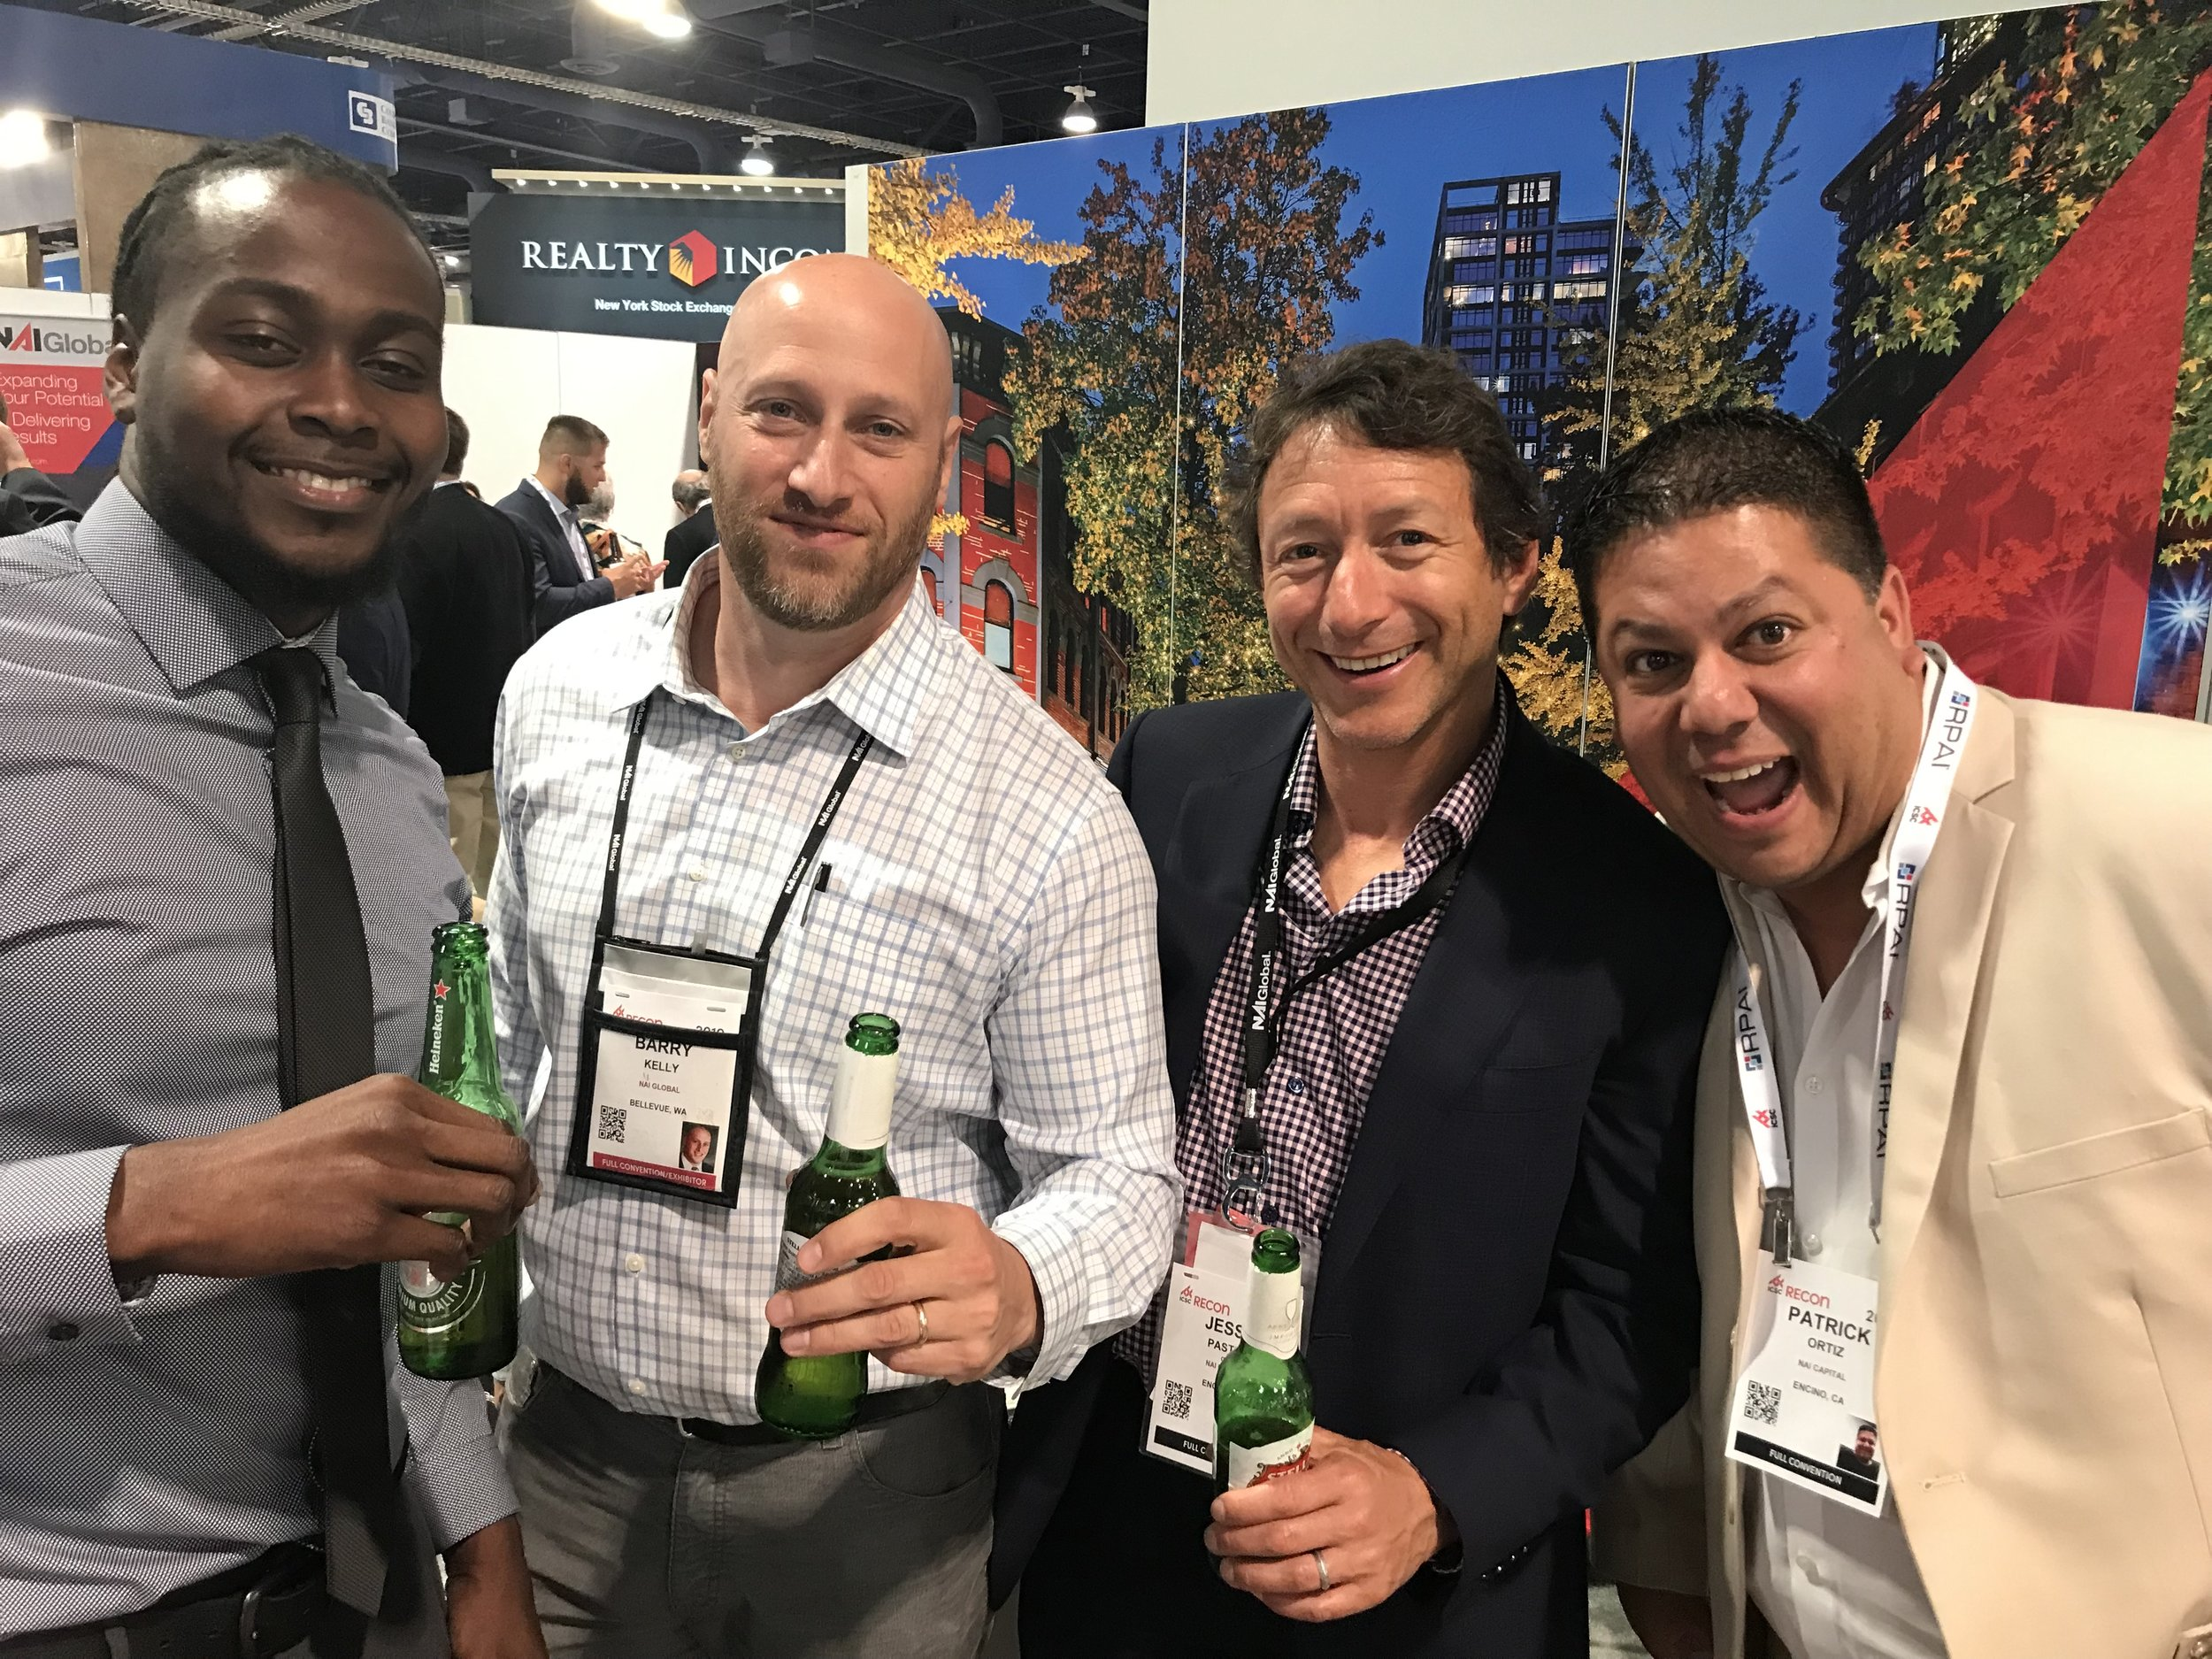 Vice President Jesse Paster (second from right) smiles with other NAI brokers at ICSC RECon in Las Vegas.